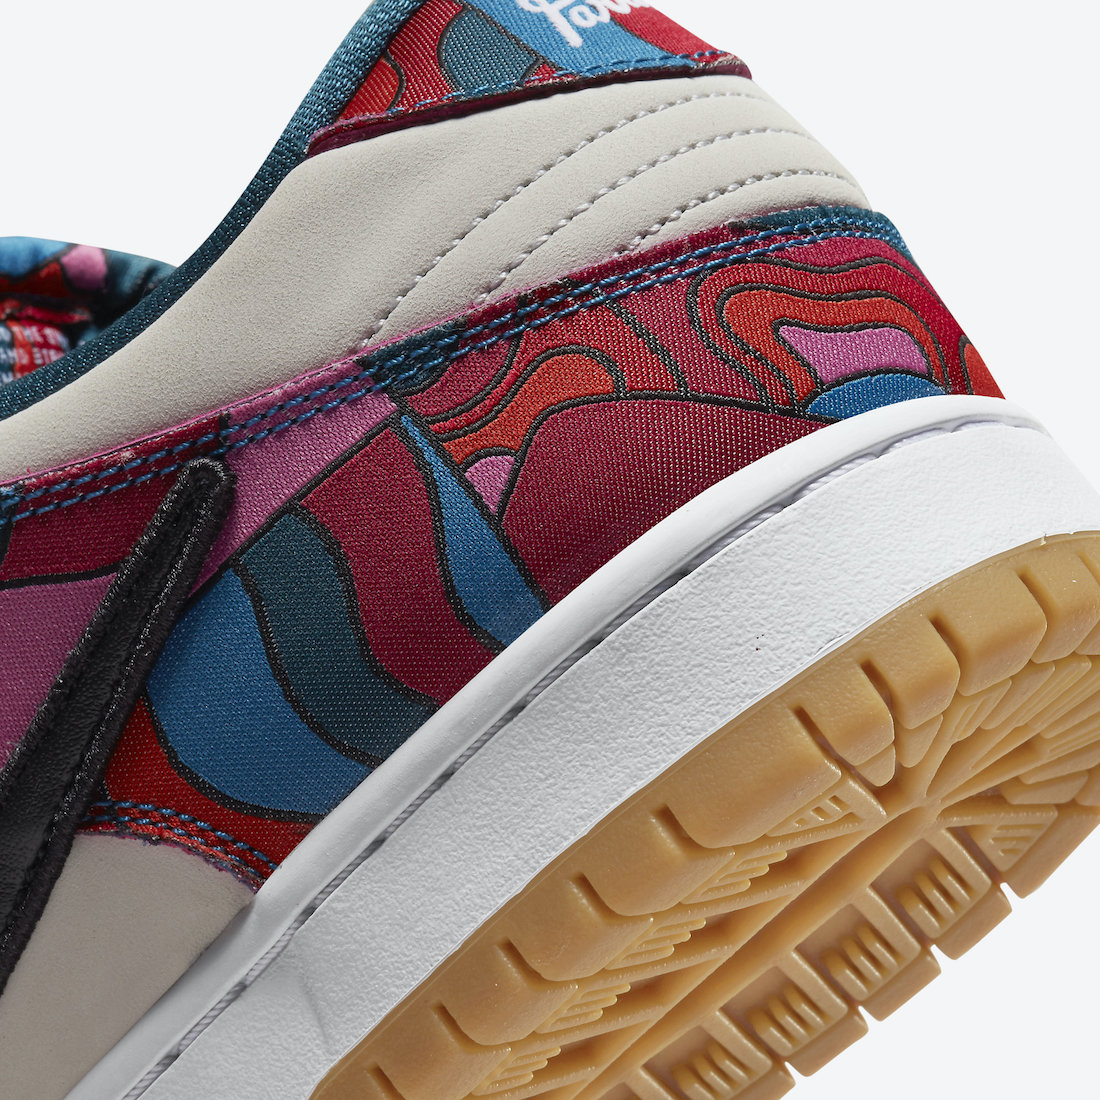 Parra Nike SB Dunk Low DH7695-600 Release Info Price